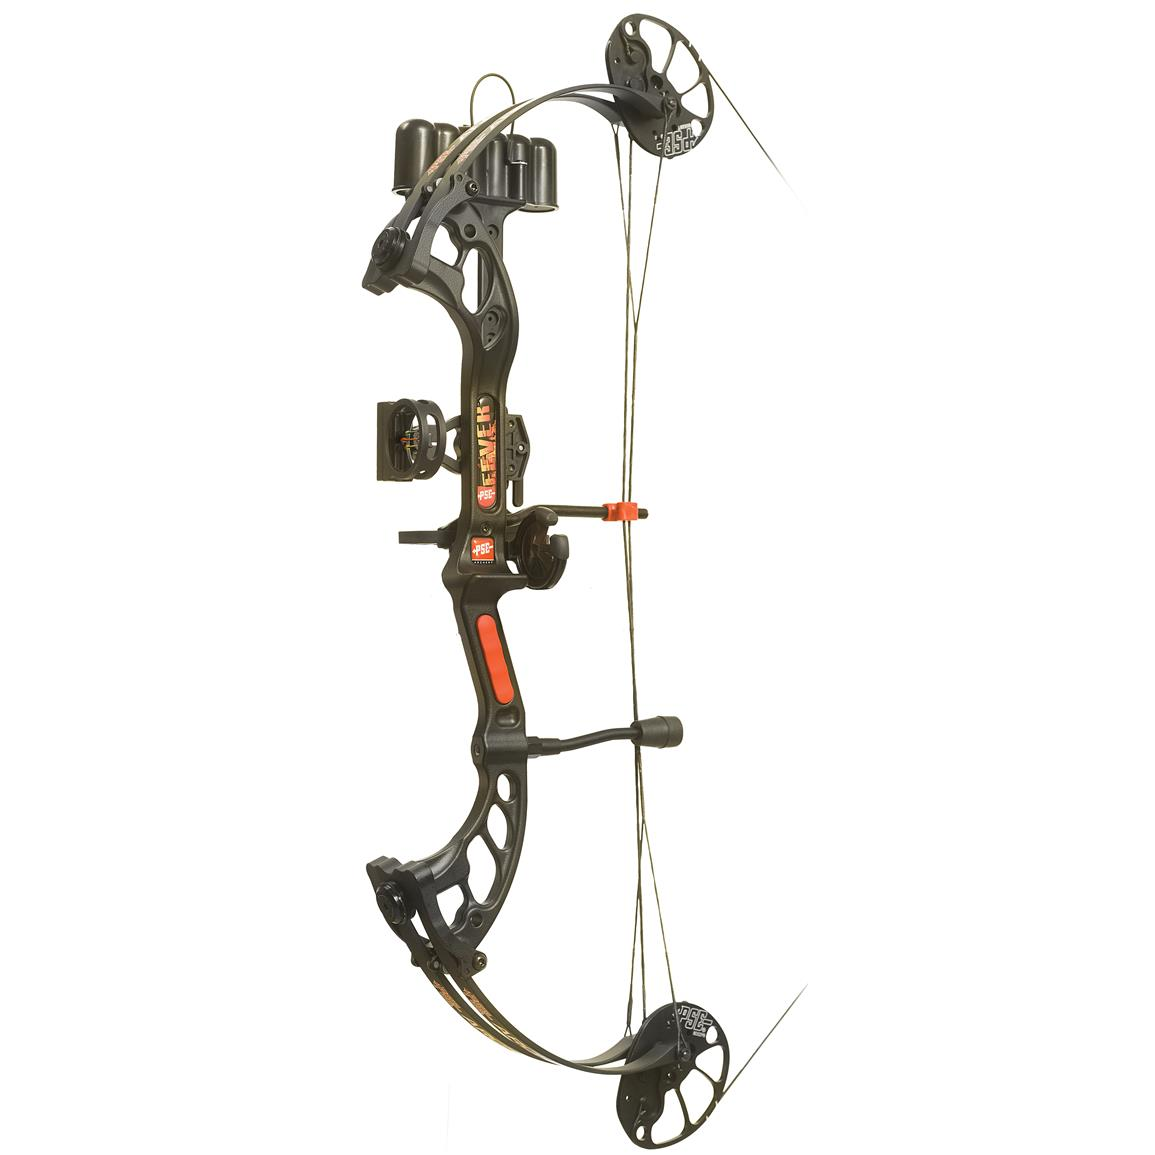 PSE Fever Youth Ready to Shoot Compound Bow, Black